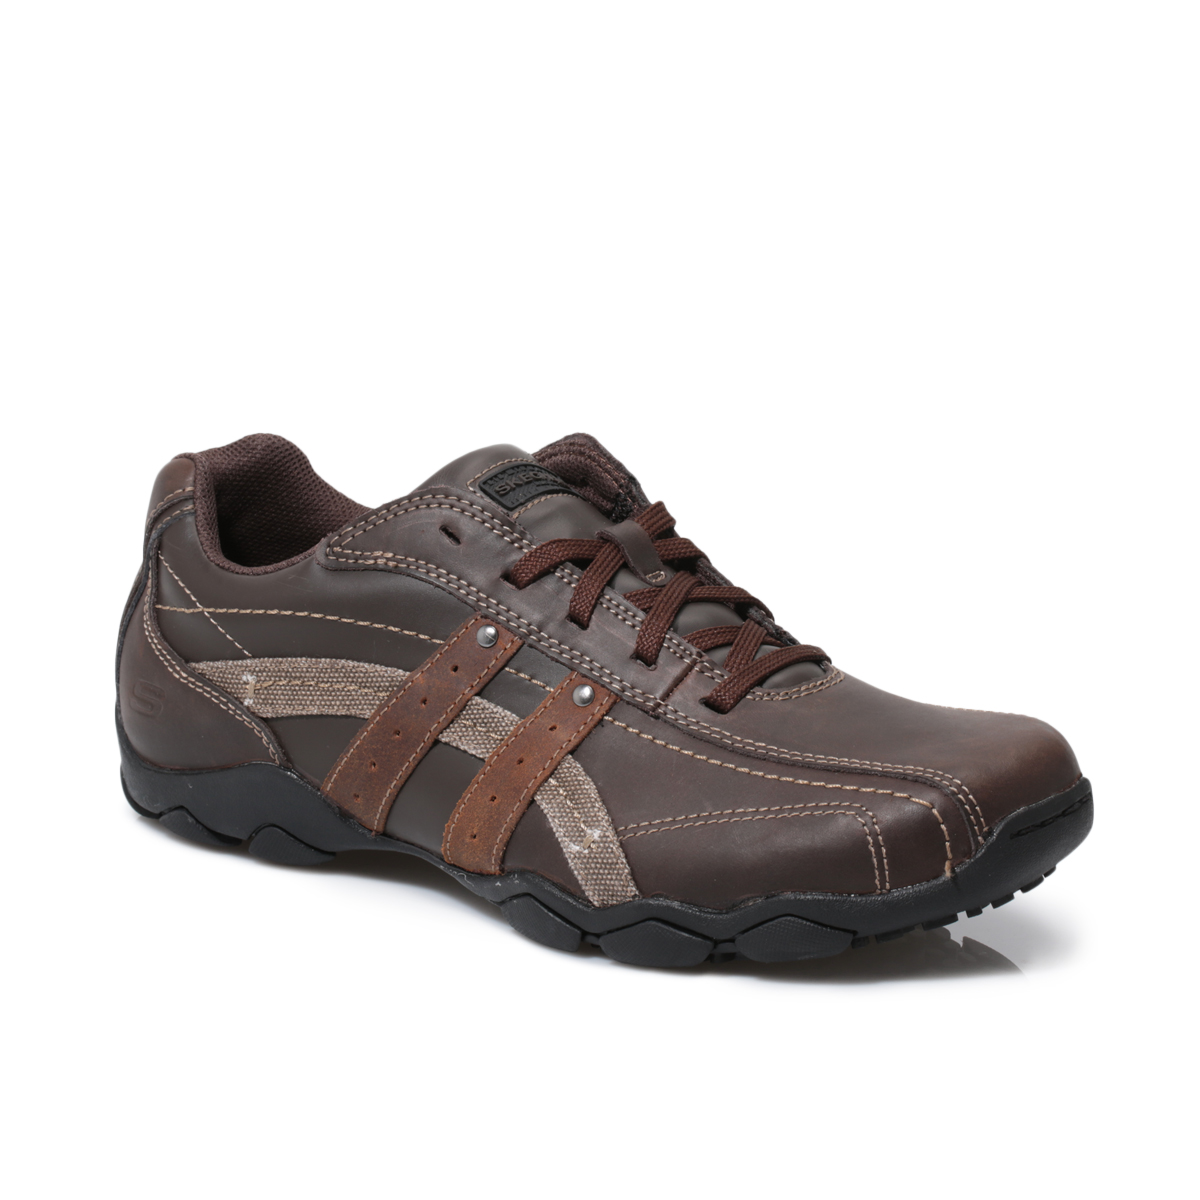 Sketcher S Brown Men S Boat Shoes